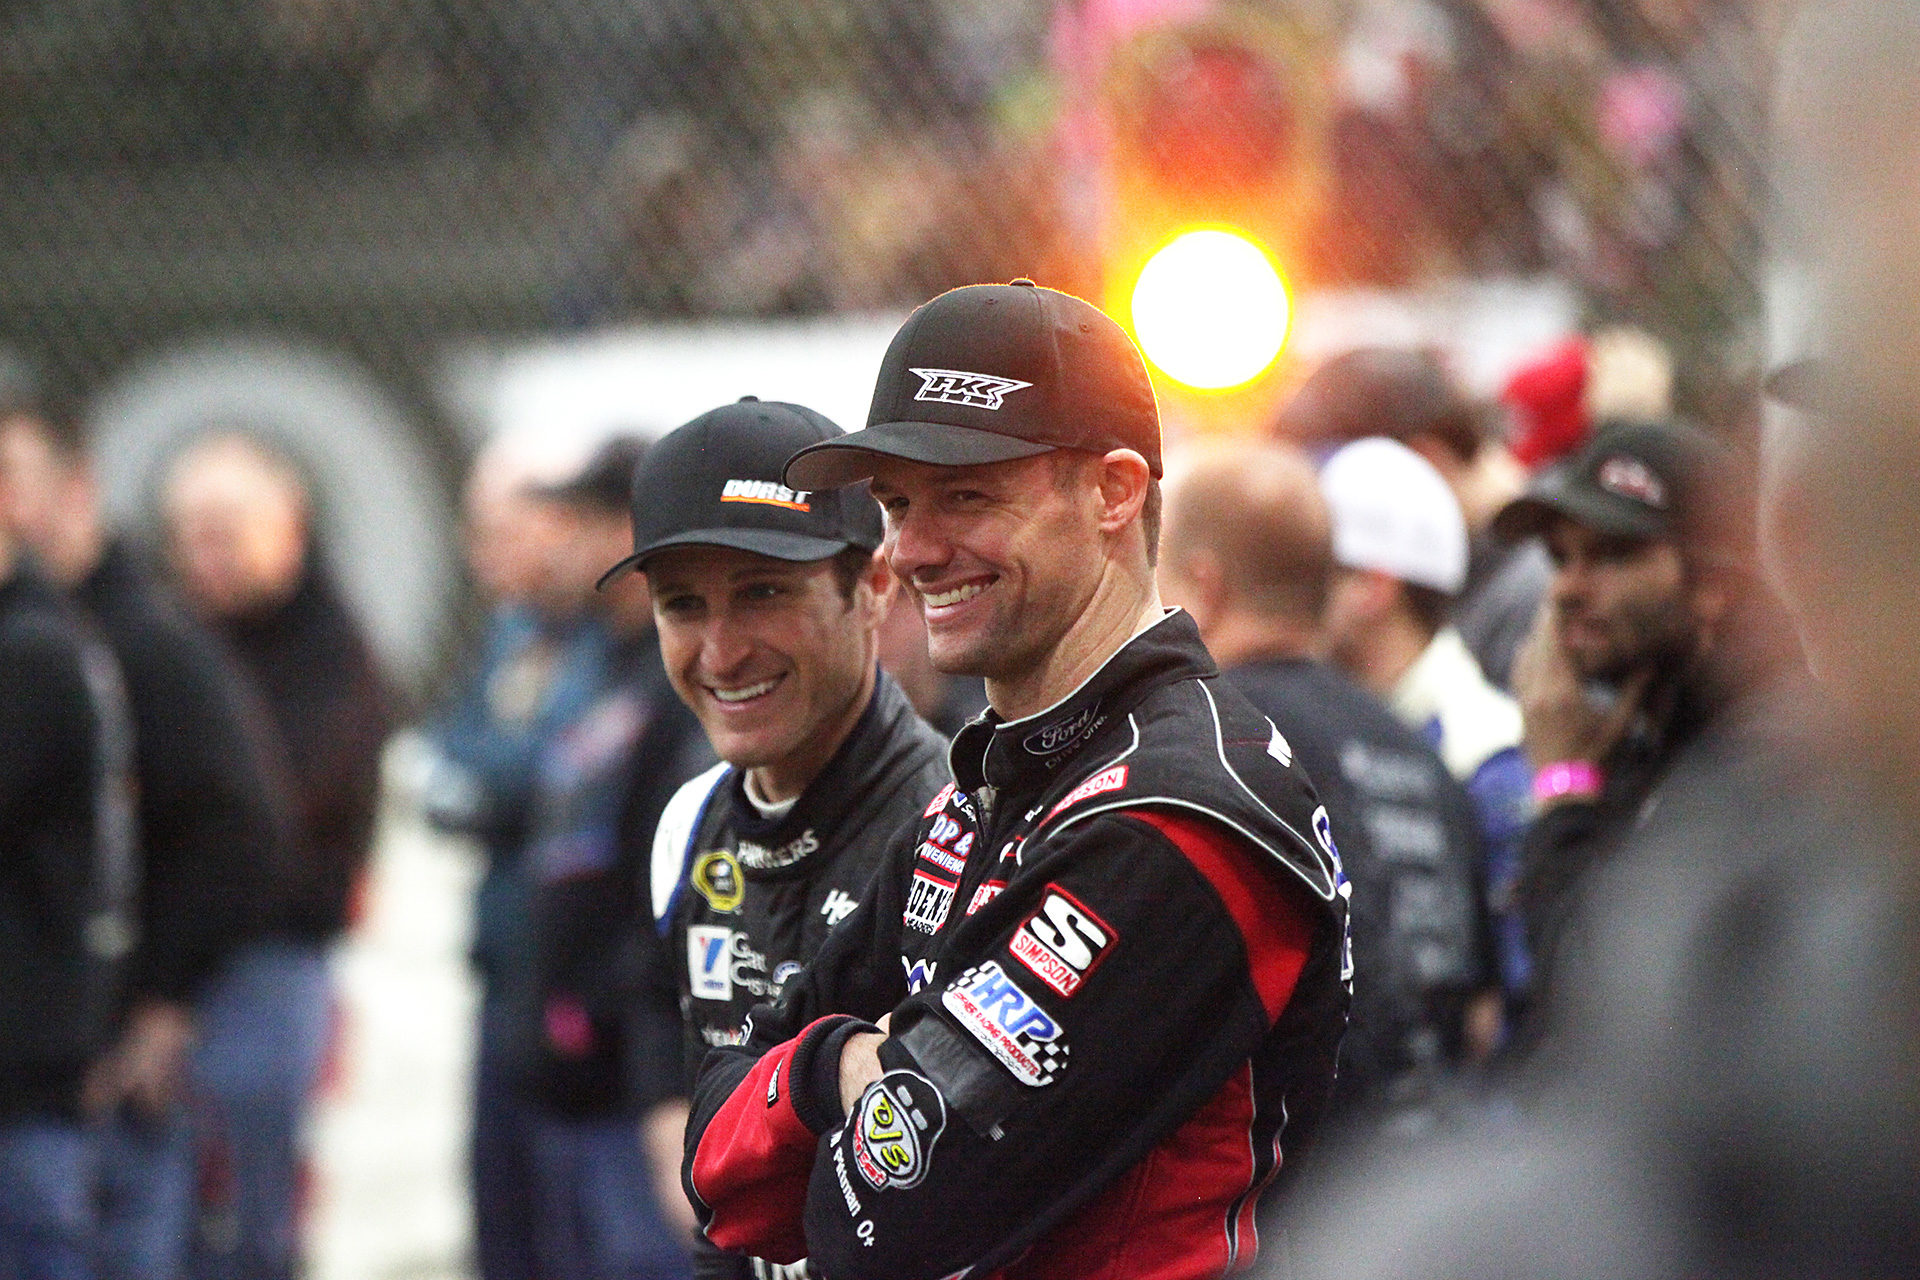 Daryn Pittman and Kasey Kahne share a laugh at The 2016 Chili Bowl in Tulsa, Oklahoma.( Jeffrey Turford / TDP )